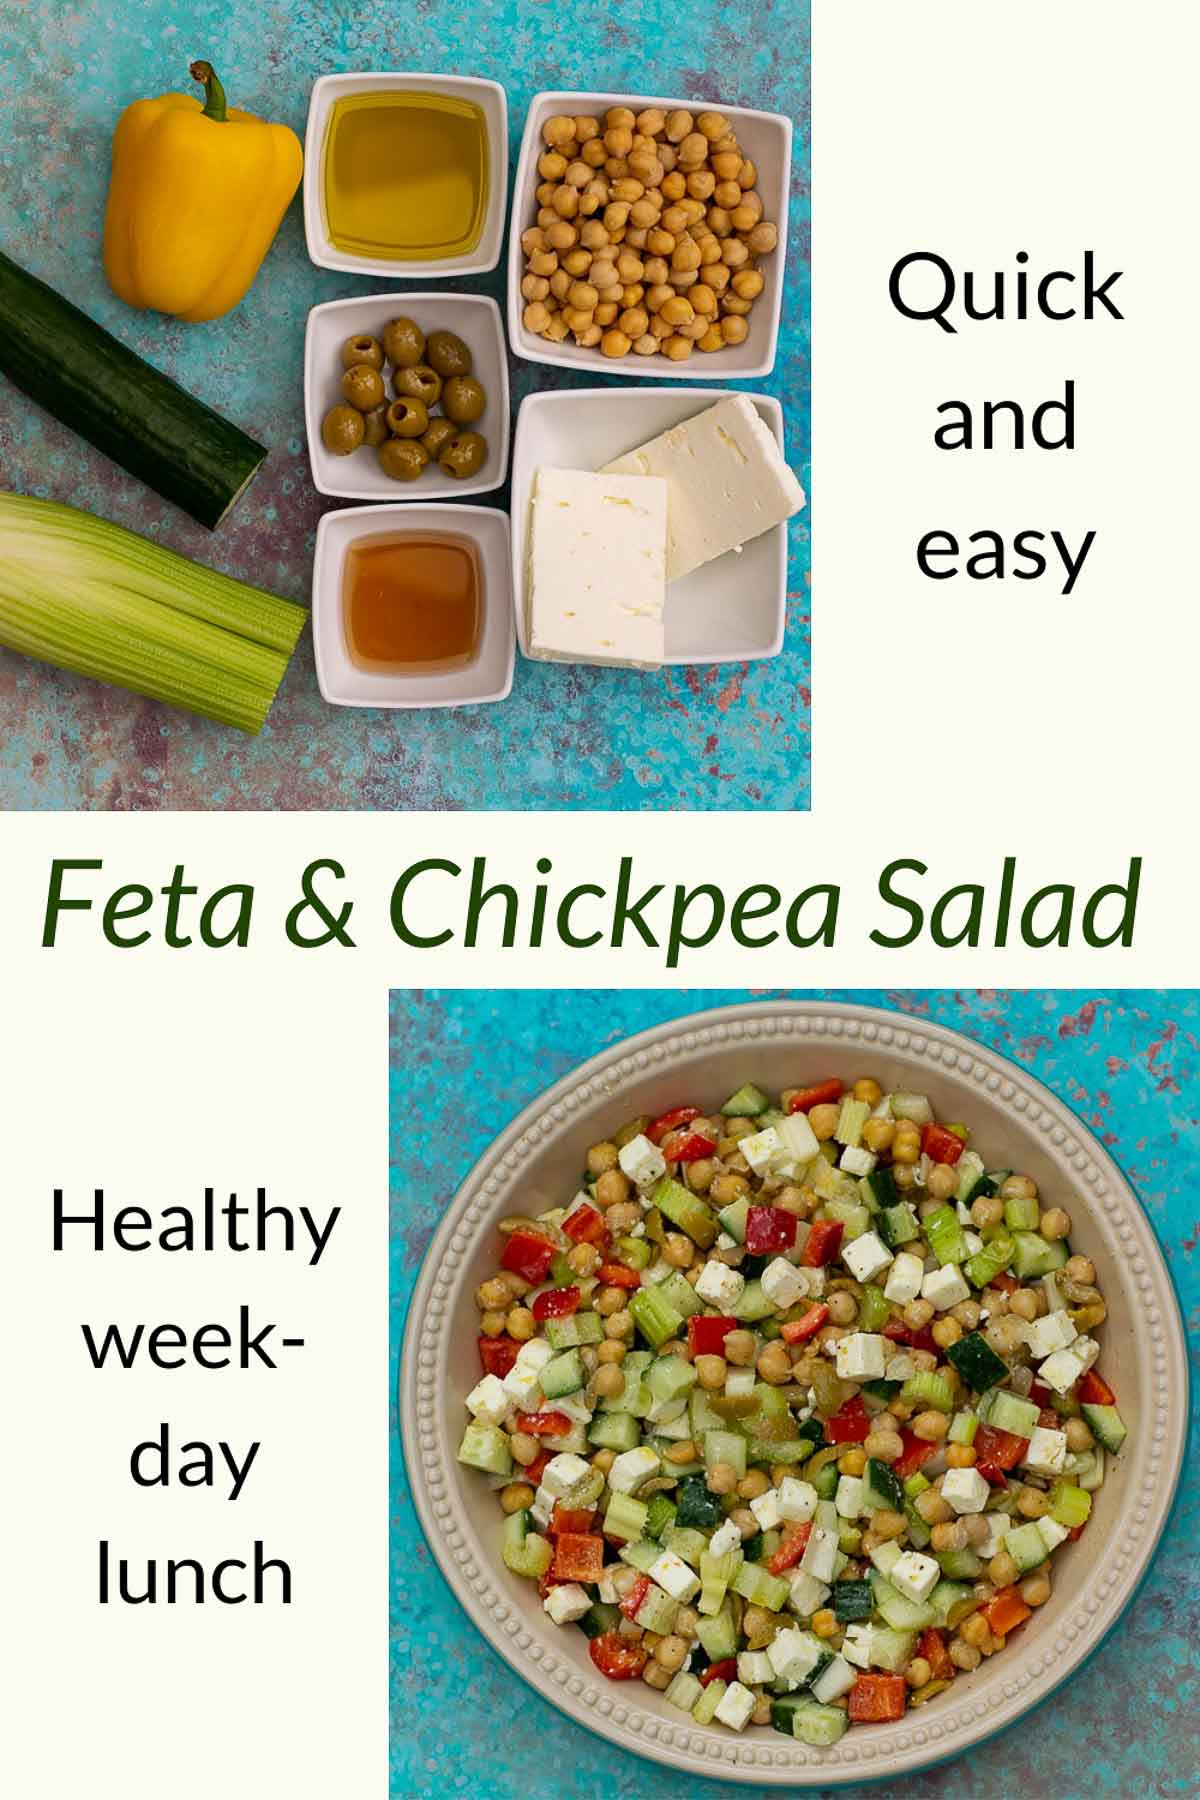 Feta Chickpea Salad with ingredients on a blue background